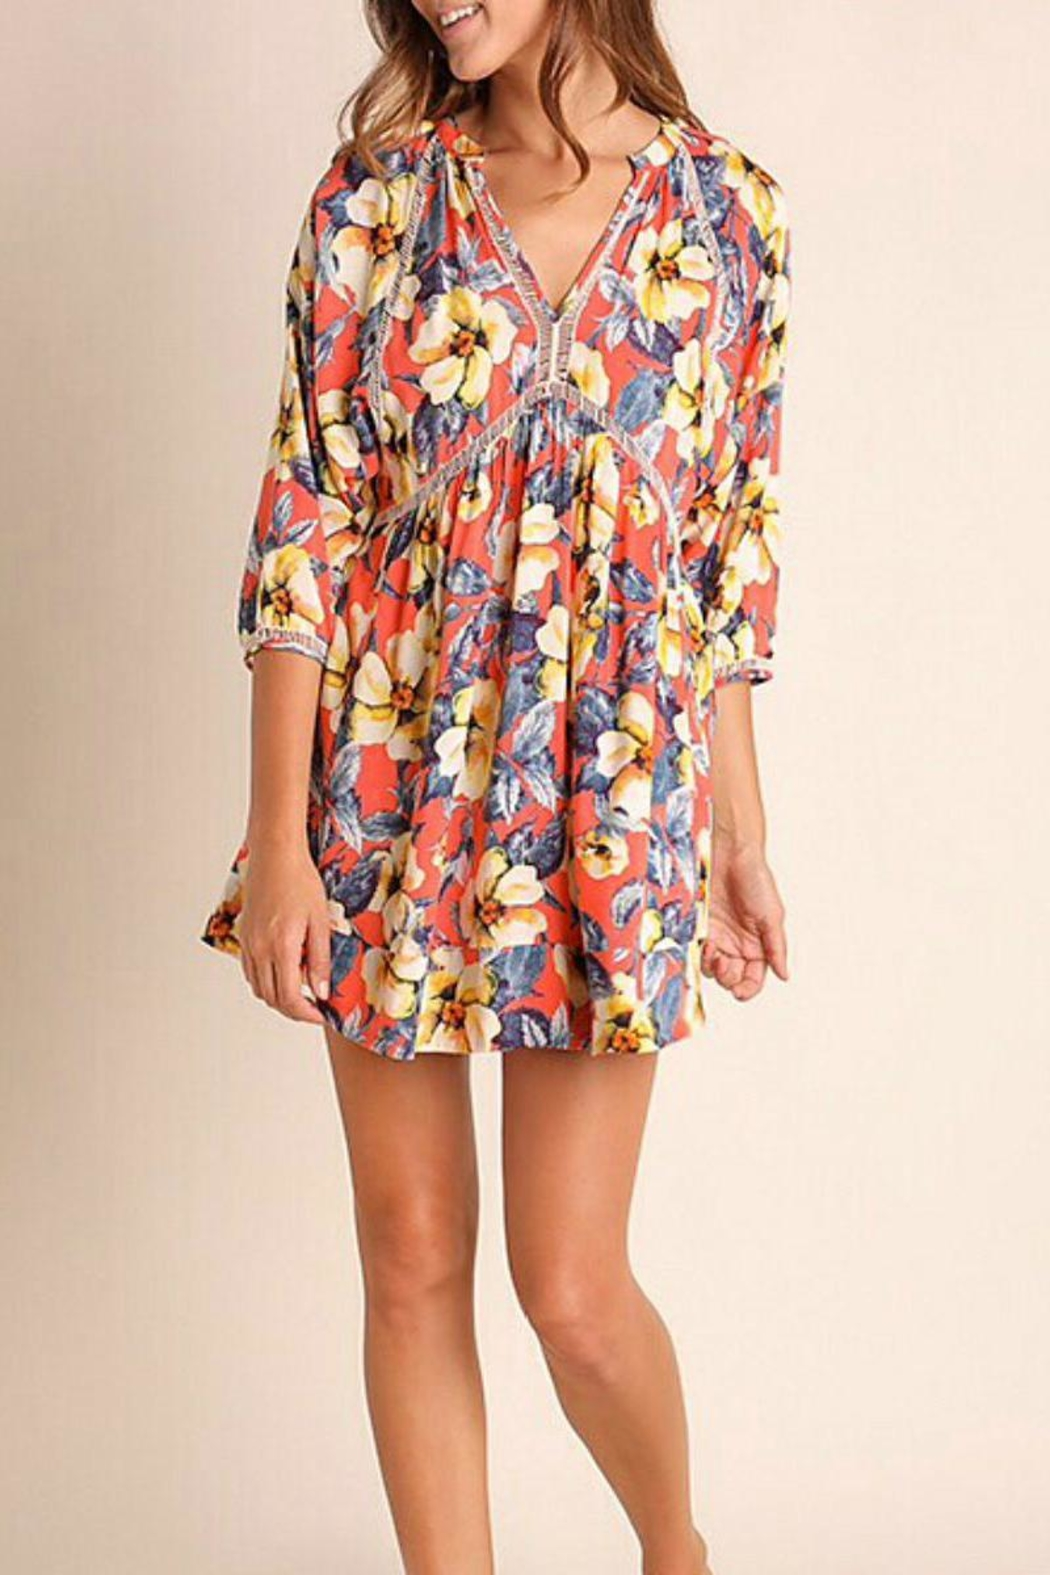 Umgee USA Multicolor Floral Dress - Main Image